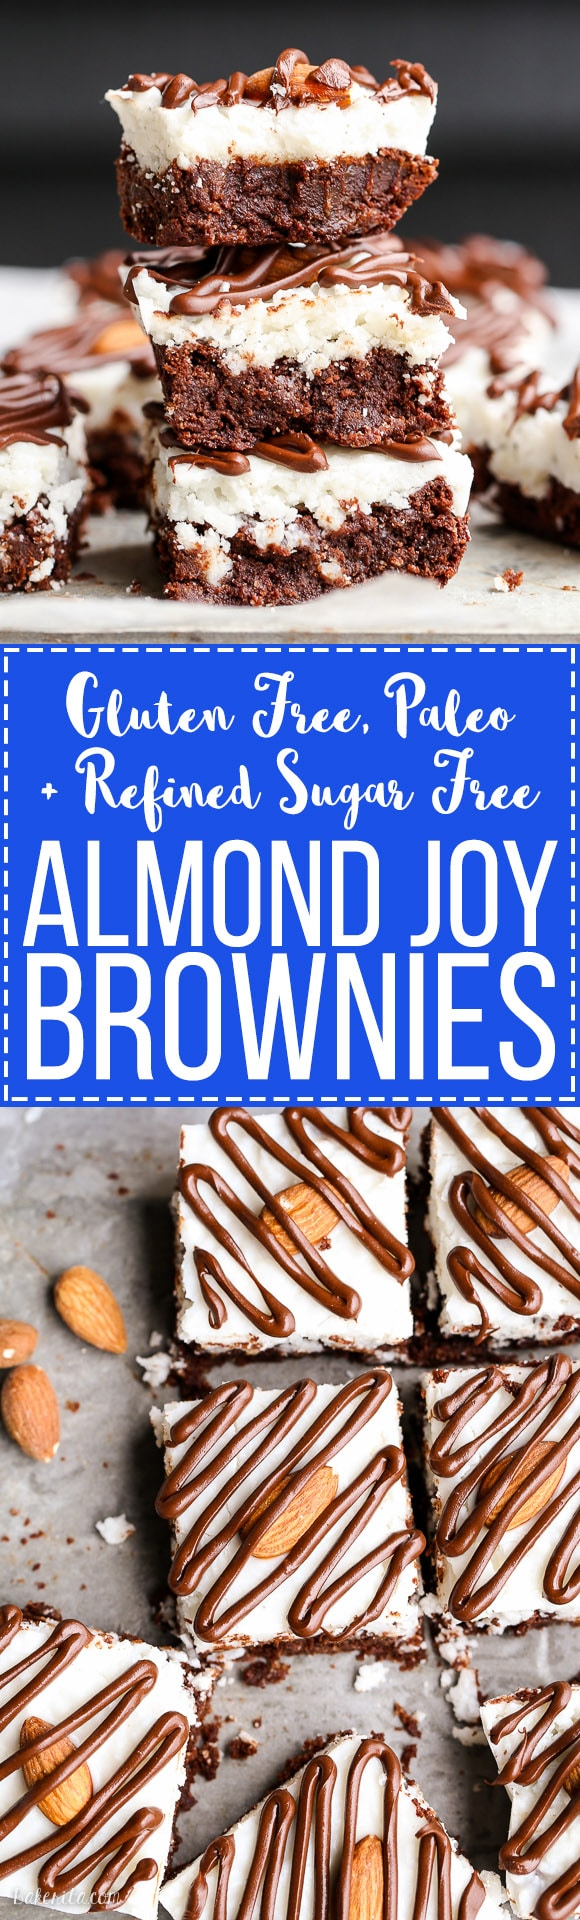 These Almond Joy Brownies have a coconut butter topping and a drizzle ...